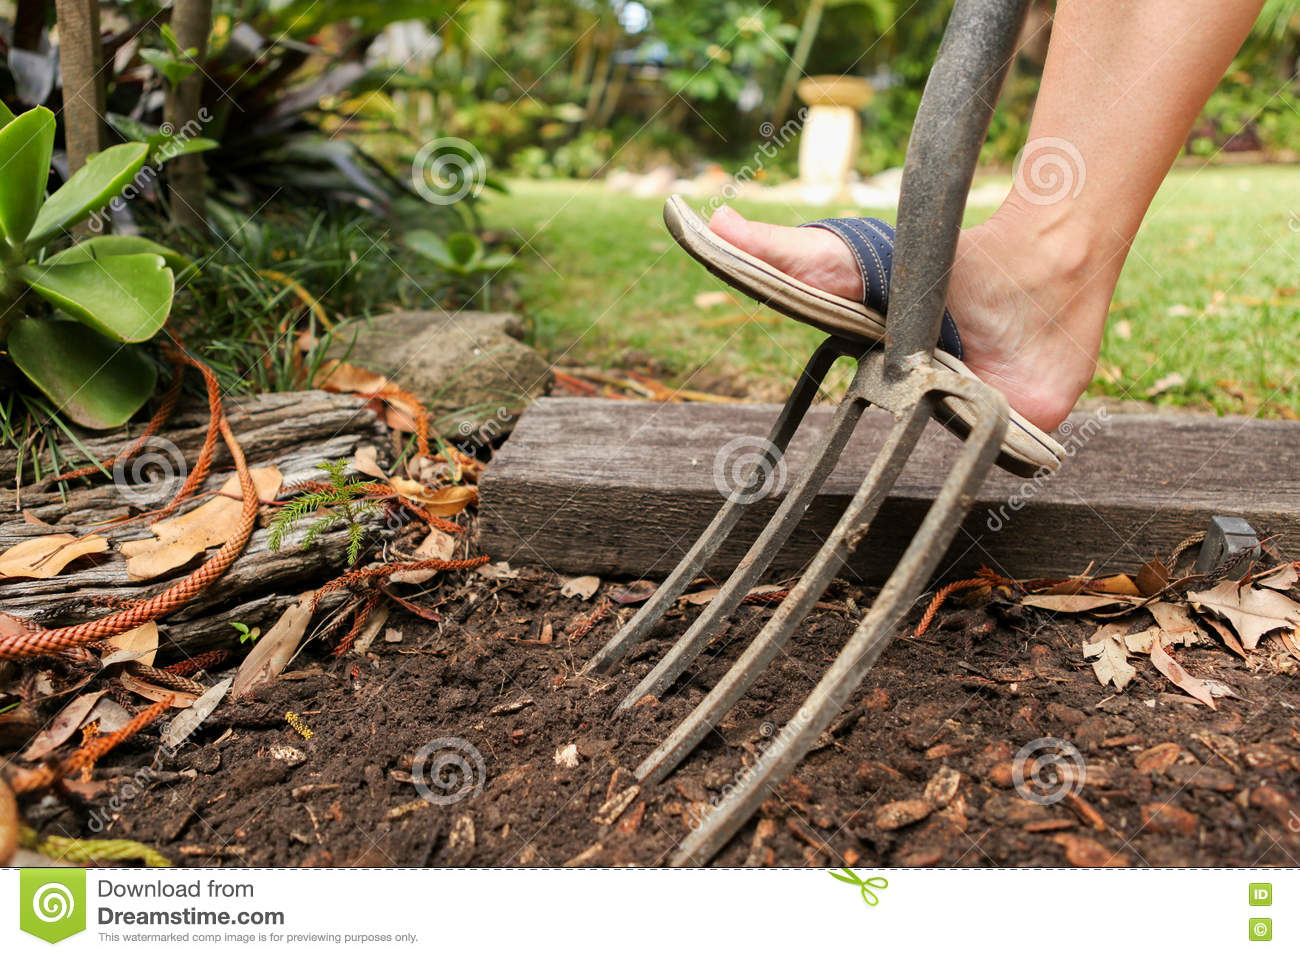 Preparing The Garden For Planting In Spring. Stock Photo - Image of ...